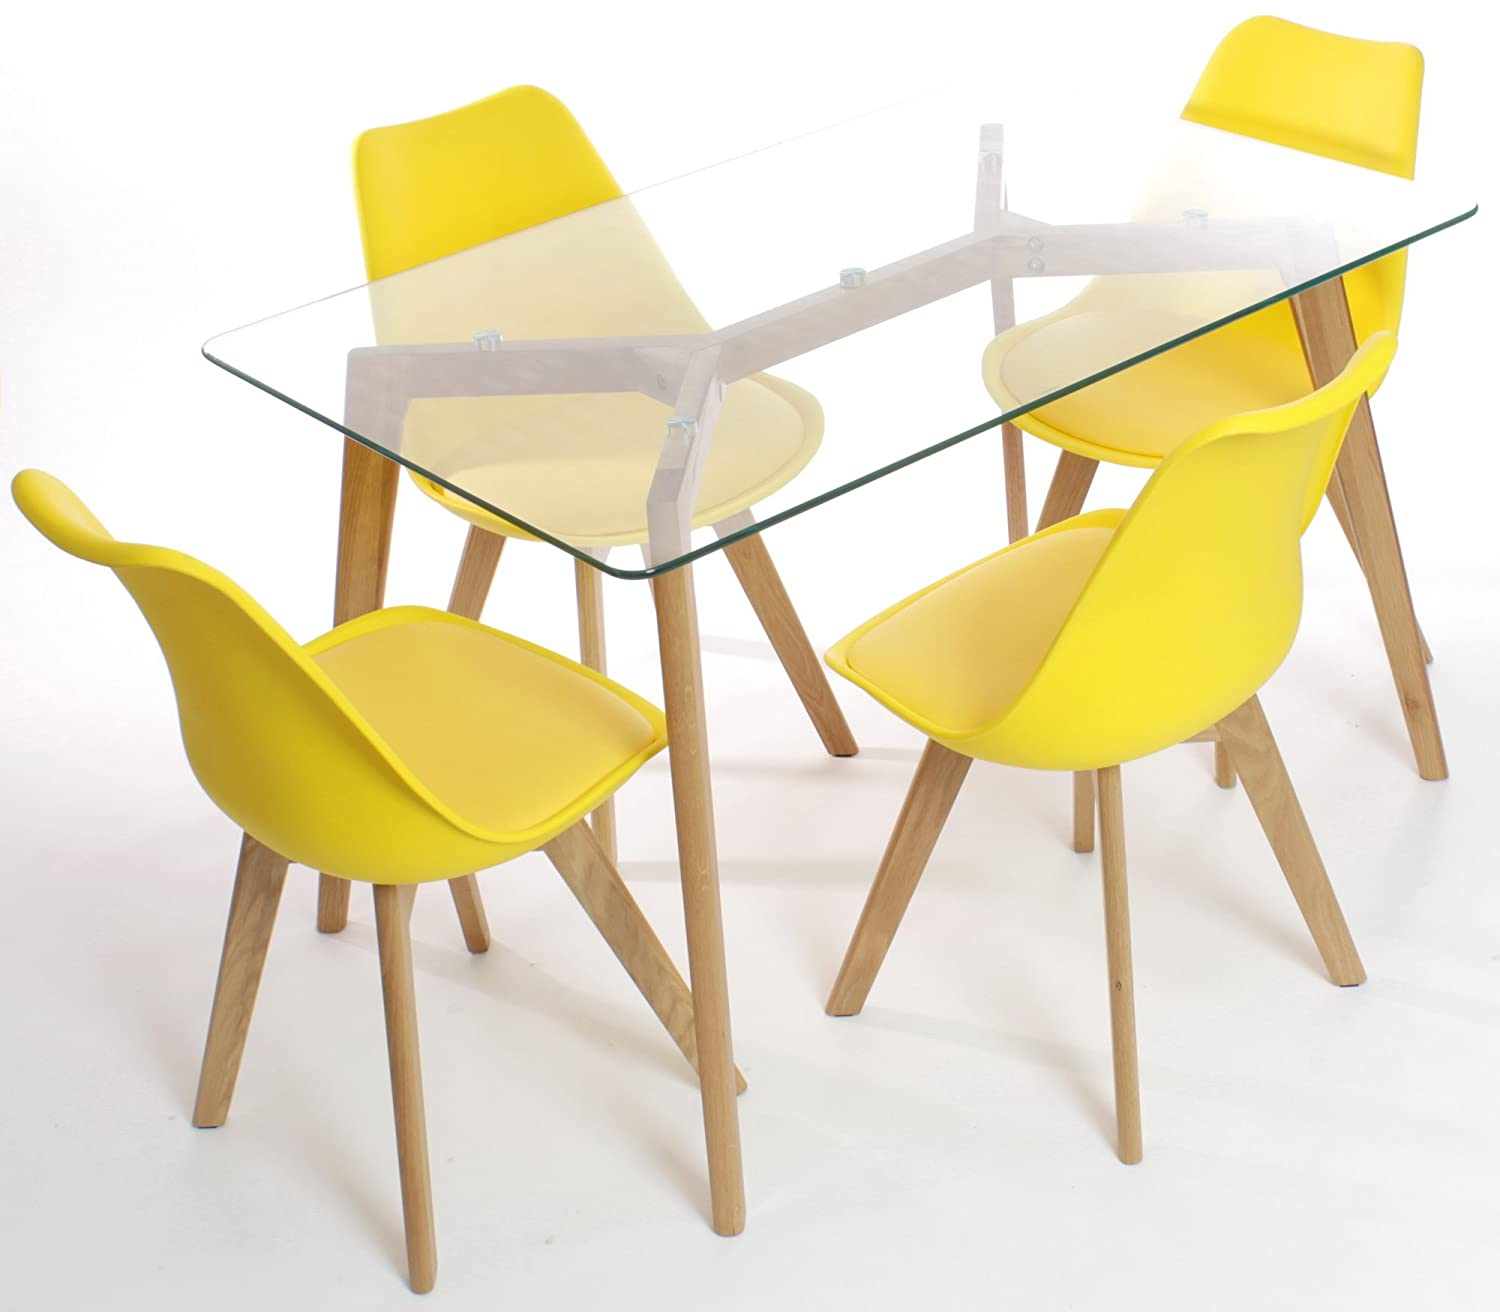 Charles Jacobs Dining Table with Four Yellow Chairs Set Solid Wood